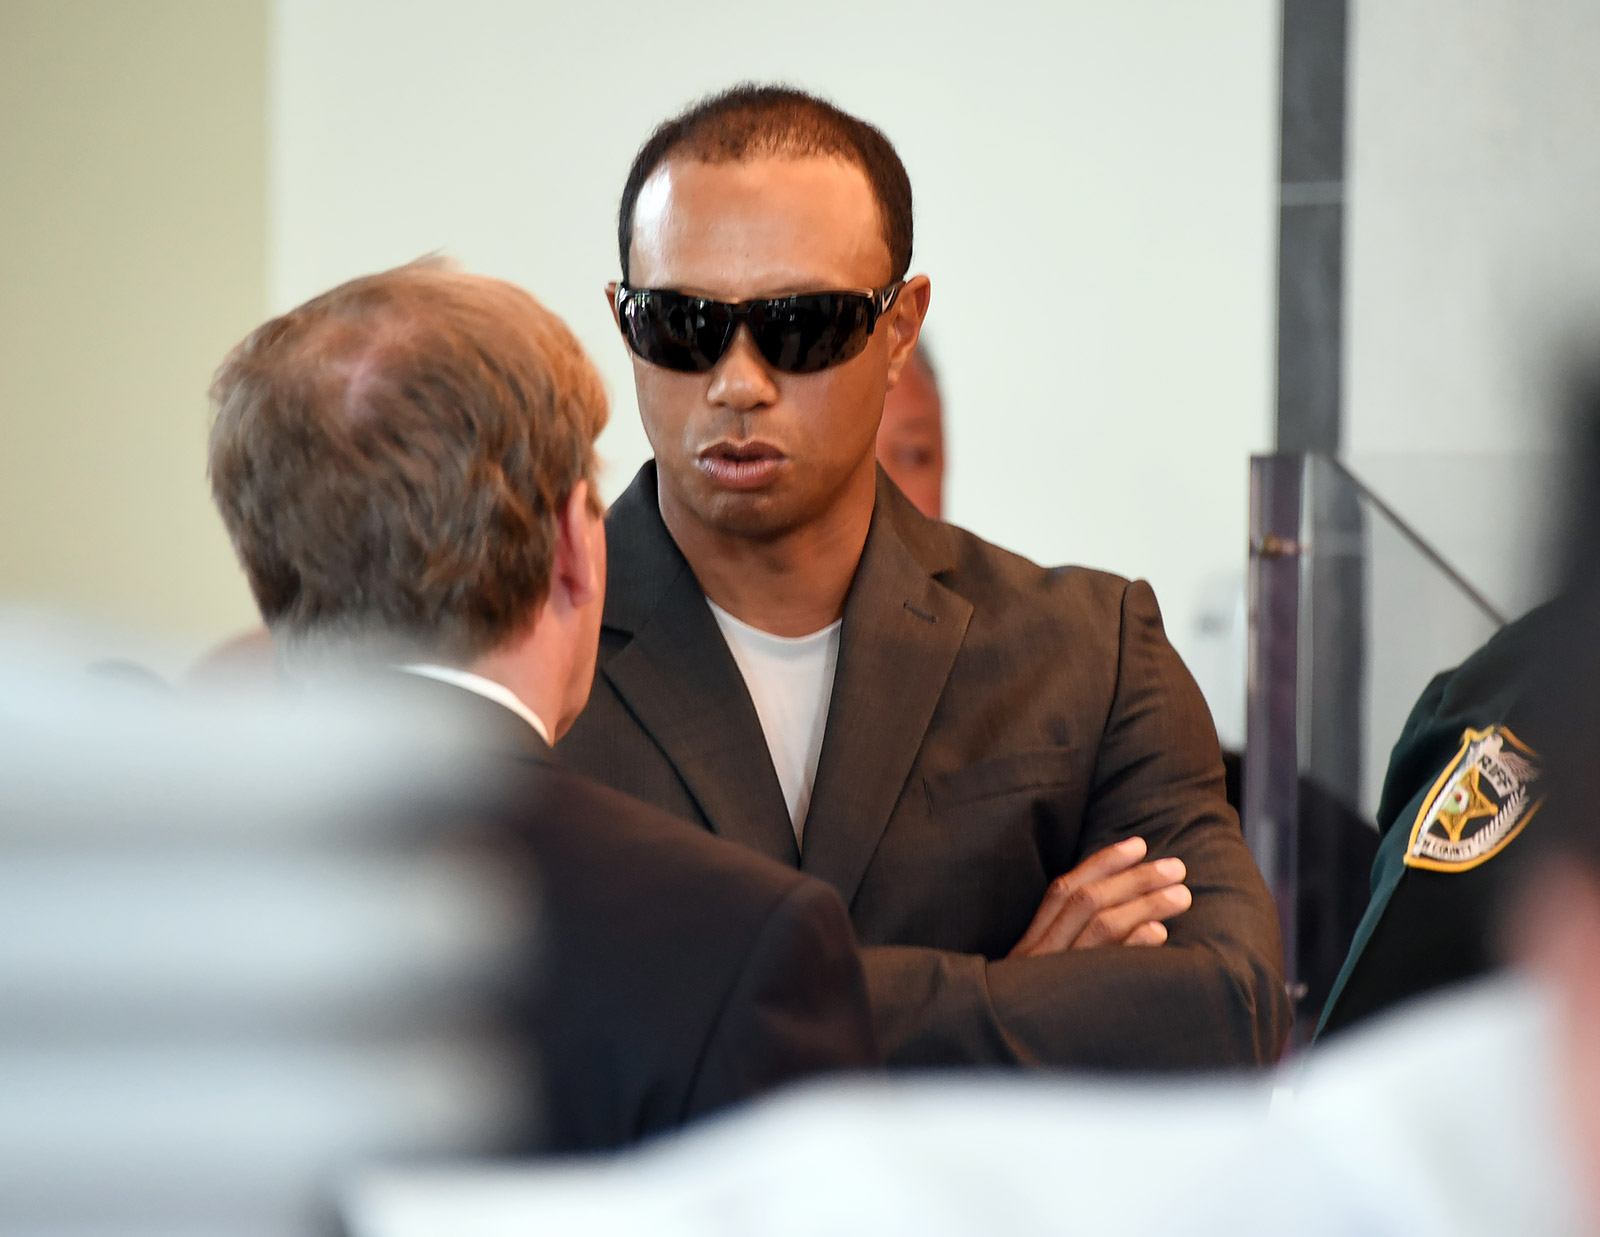 Tiger Woods heads to court for his infamous DUI arrest in Florida